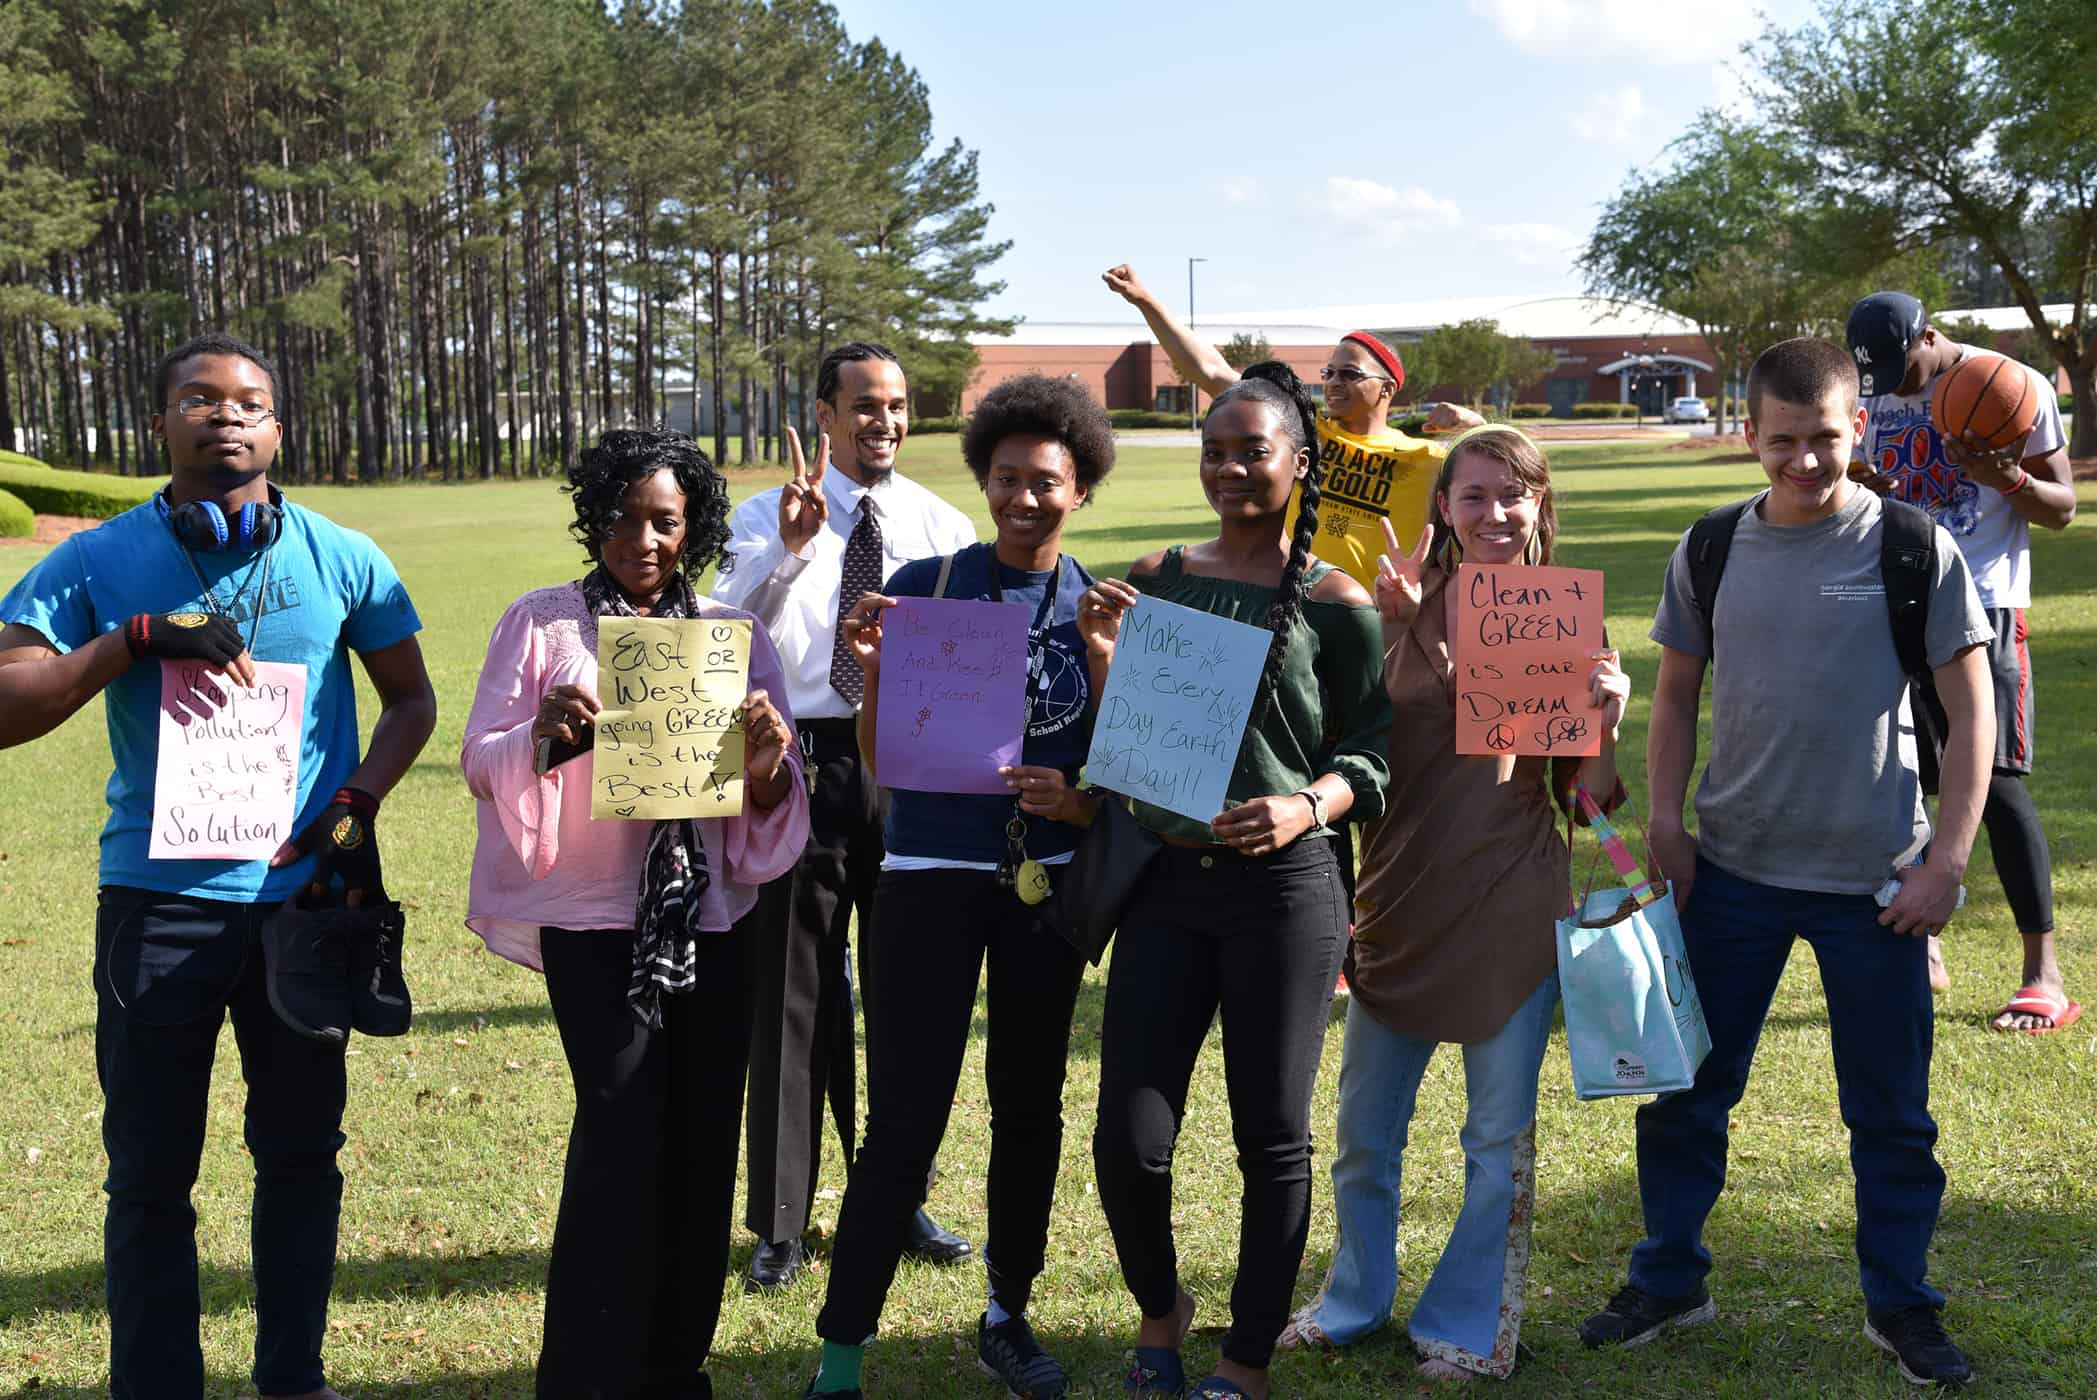 A group of people stand together, holding up signs made of construction paper.